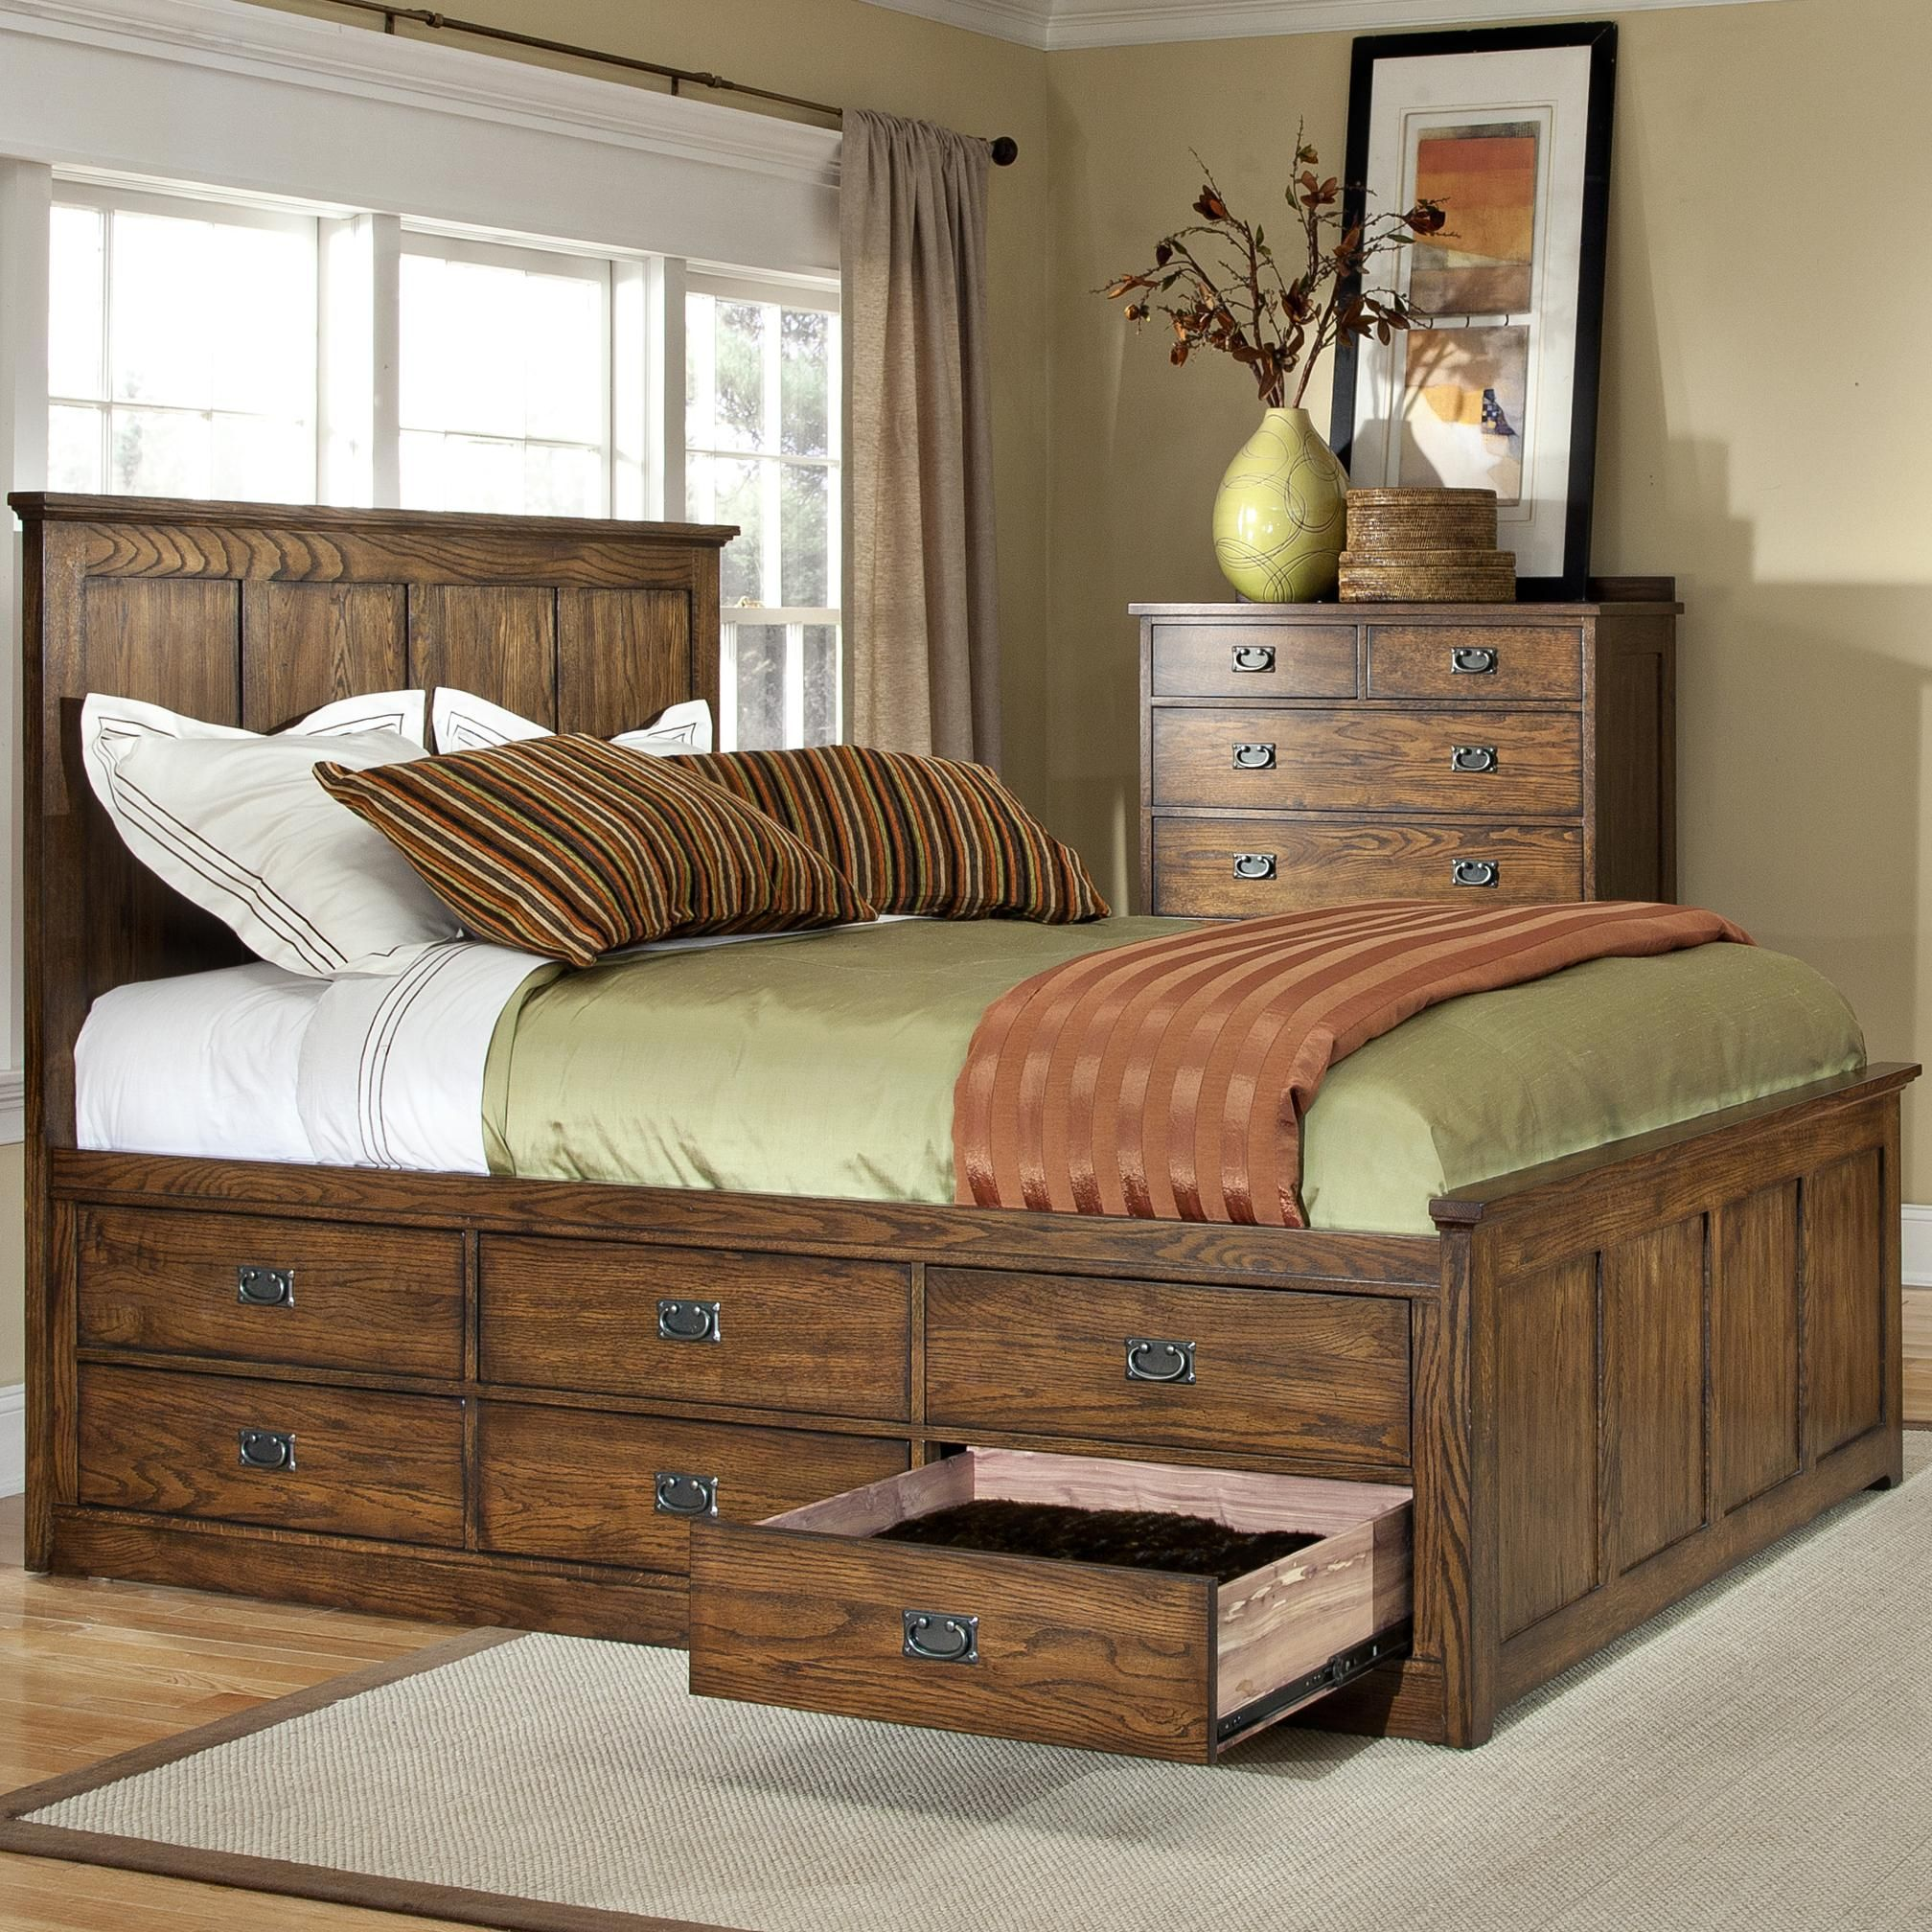 oak park king bed with  storage drawers by intercon  bedroom  - oak park king bed with  storage drawers by intercon